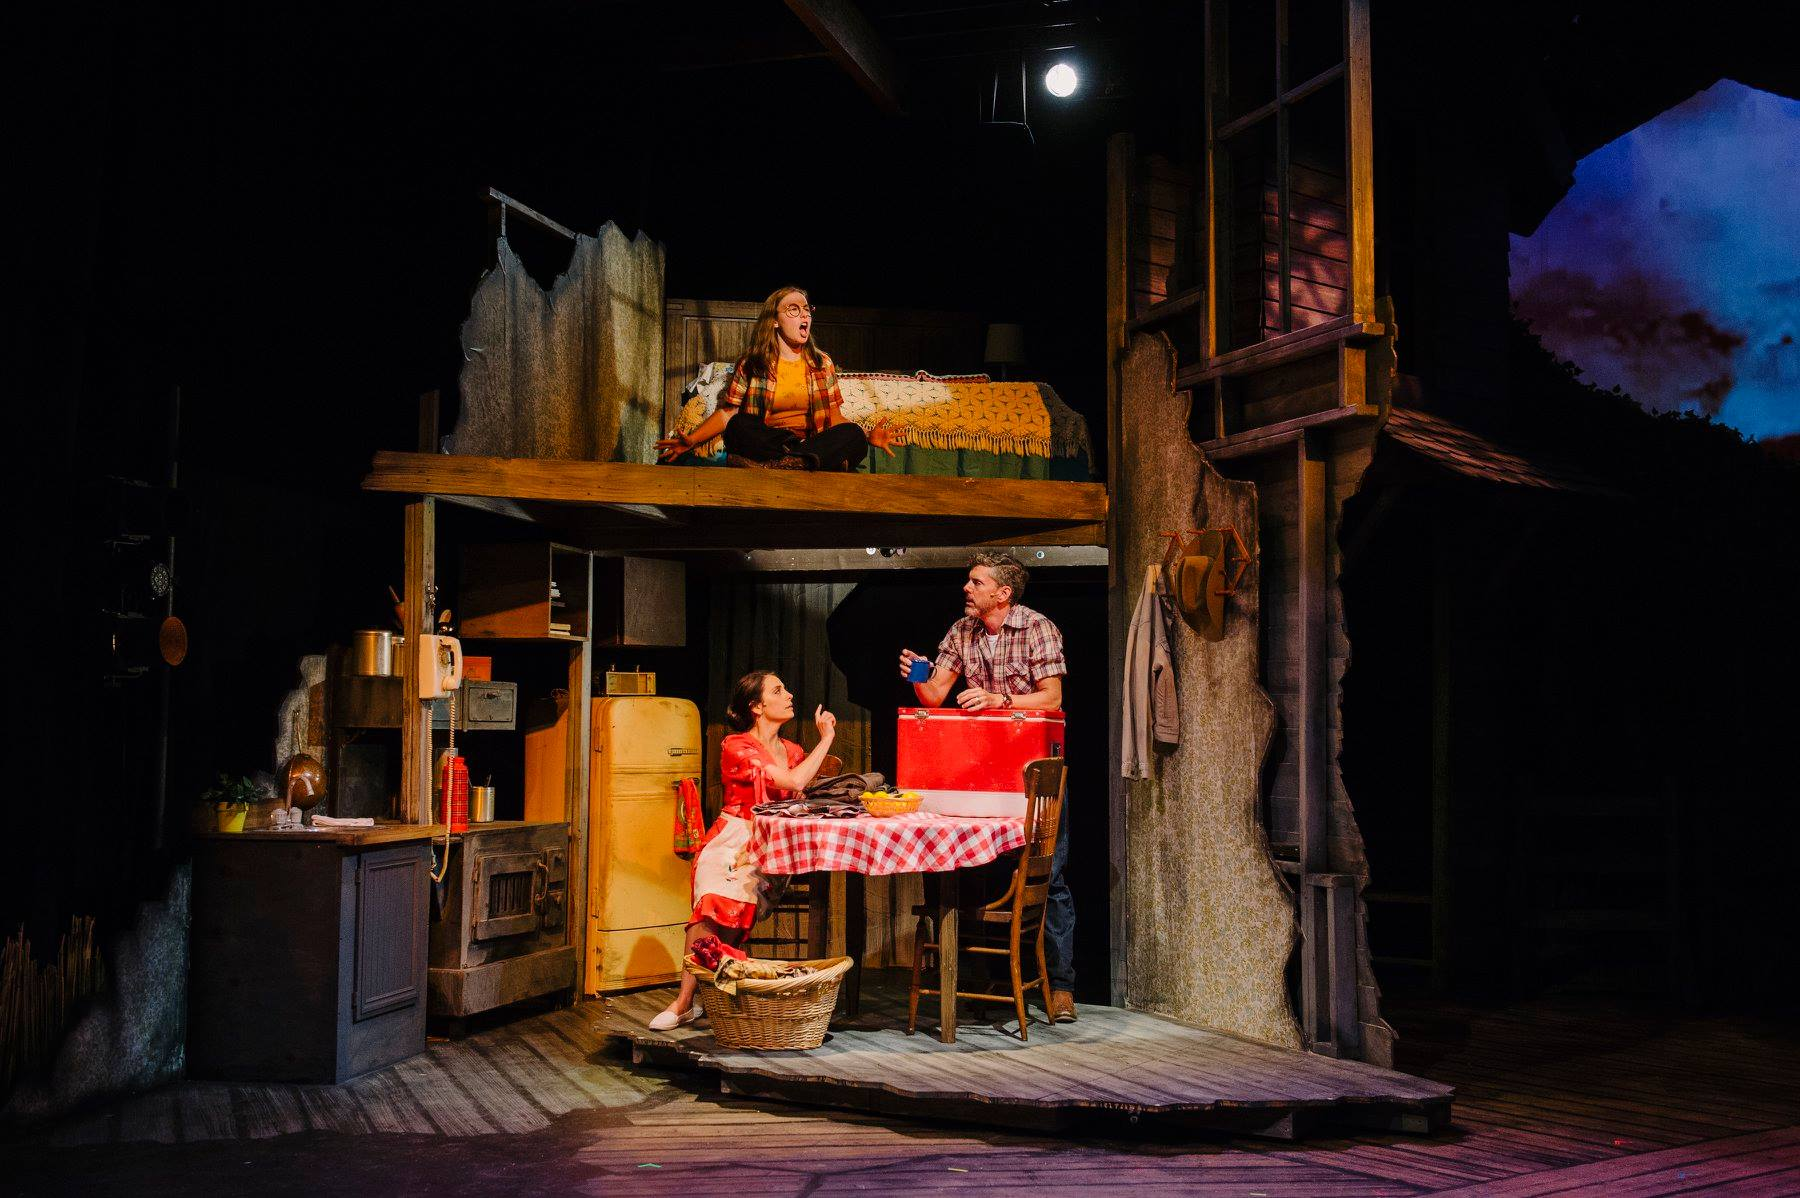 Susan Derry as Francesca with Chad Wheeler as Bud, Lily Warner as Carolyn in Bridges of Madison County at Keegan Theatre